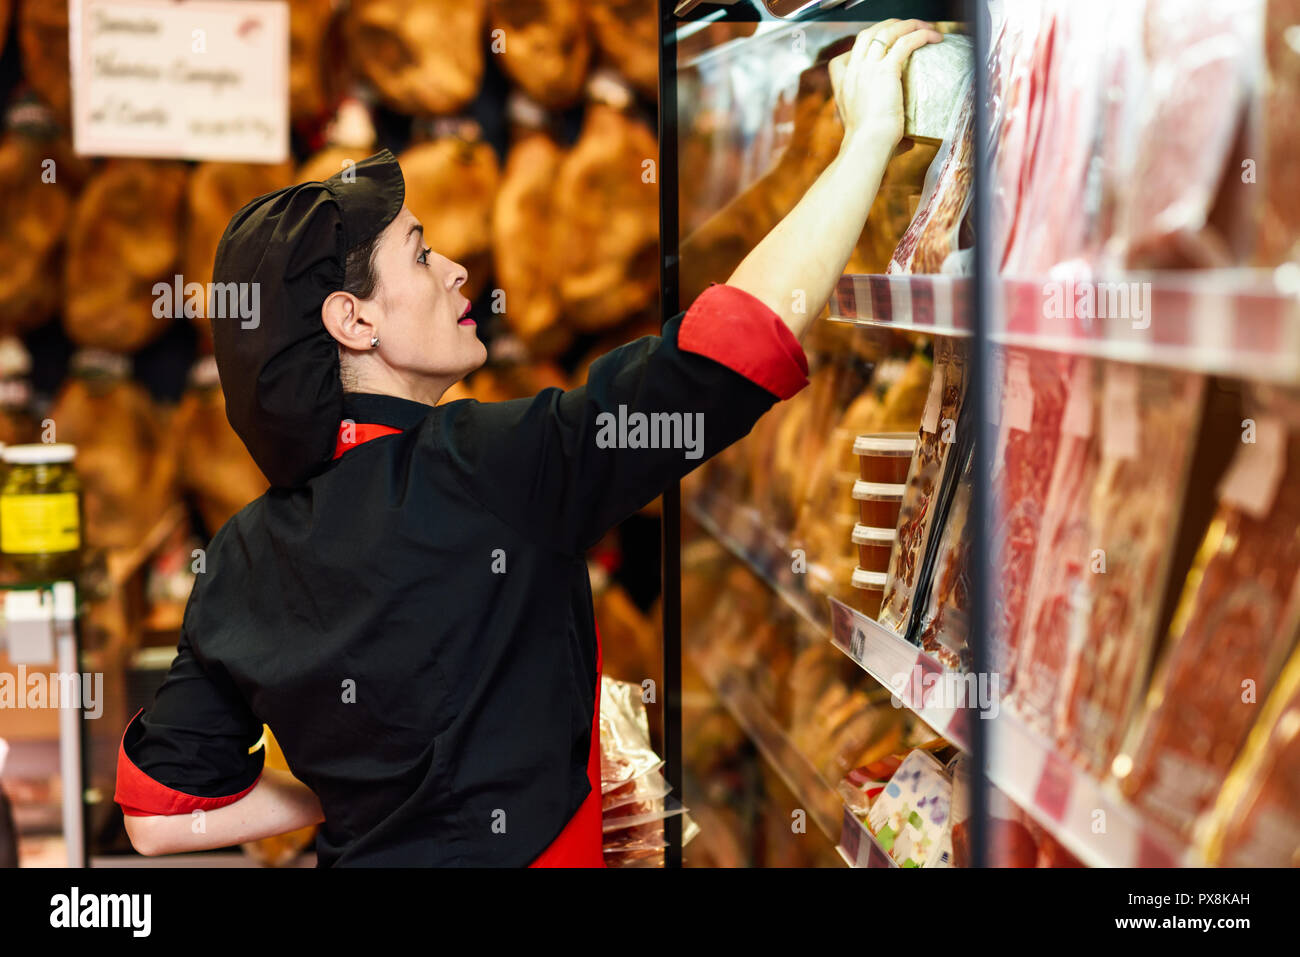 Portrait of female worker taking products in butcher shop. Refrigerated display case for sausage packages, ham and cheese - Stock Image